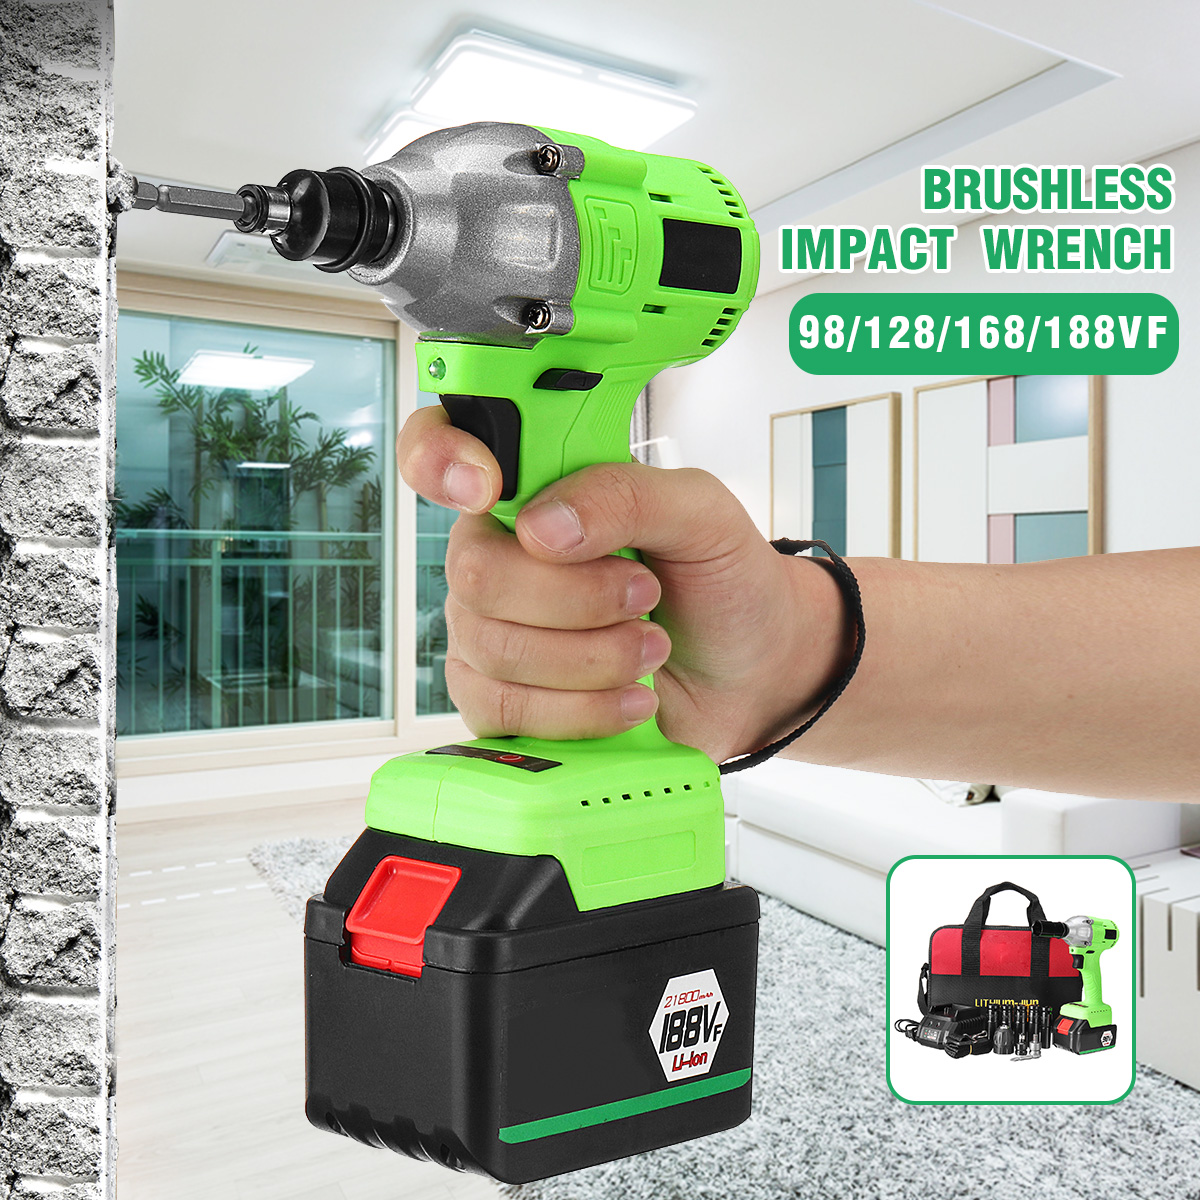 460Nm Electric Impact Wrench 3300RPM Rechargeable Li-Ion Battery Electric Brushless Wrench Cordless Home Hand Power Tool electric impact wrench 98 128 168 188vf electric brushless li ion battery wrench 10mm chuk with box cordless speed control power